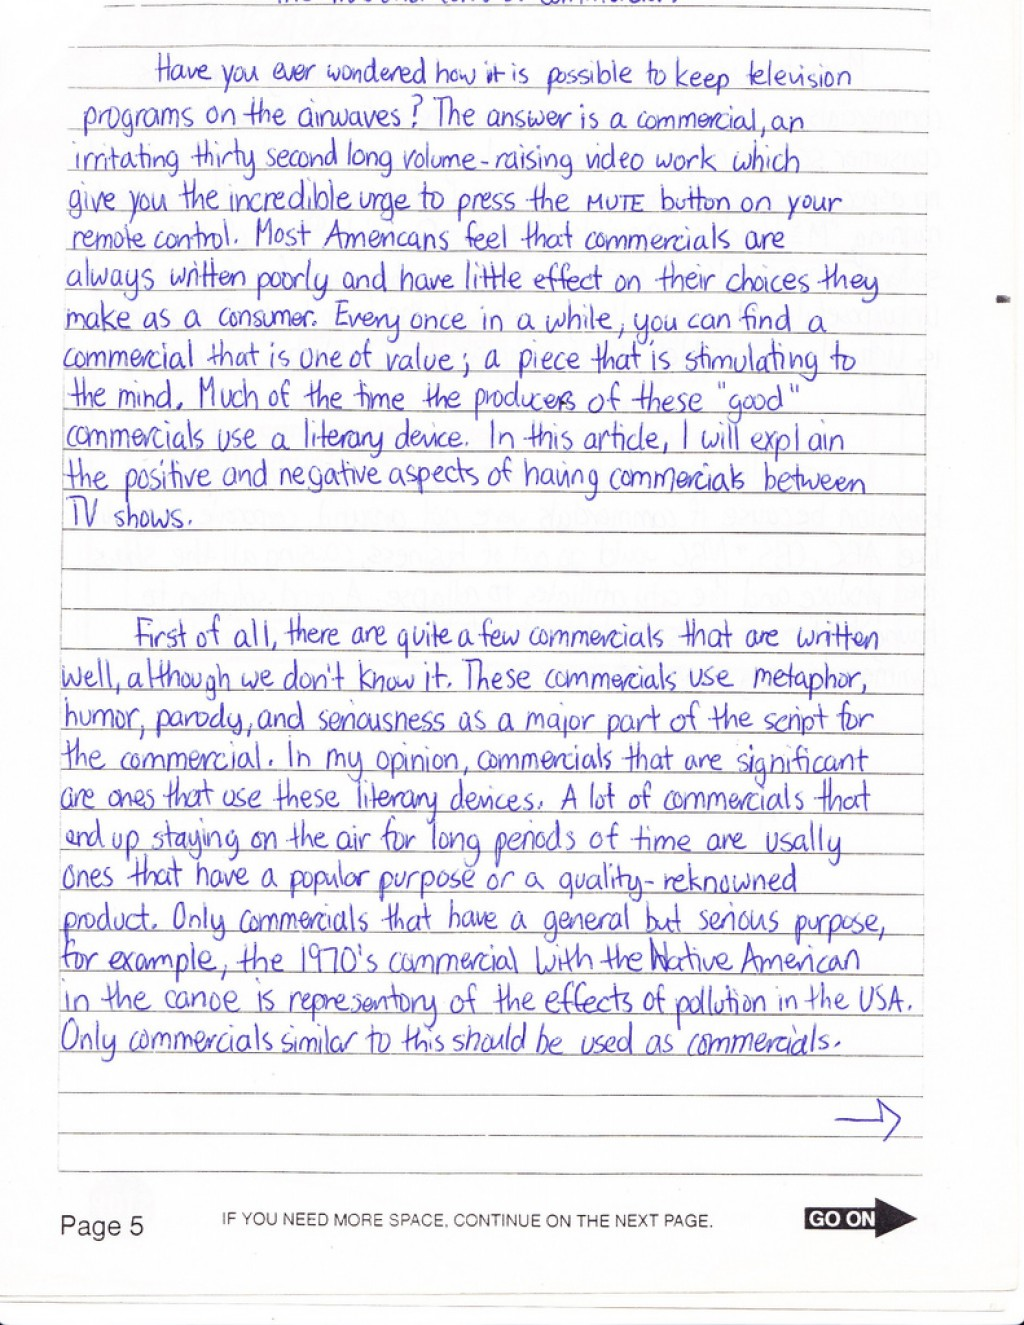 001 Sat Essay Average Score Example What Is Fearsome A Good 2016 High Large